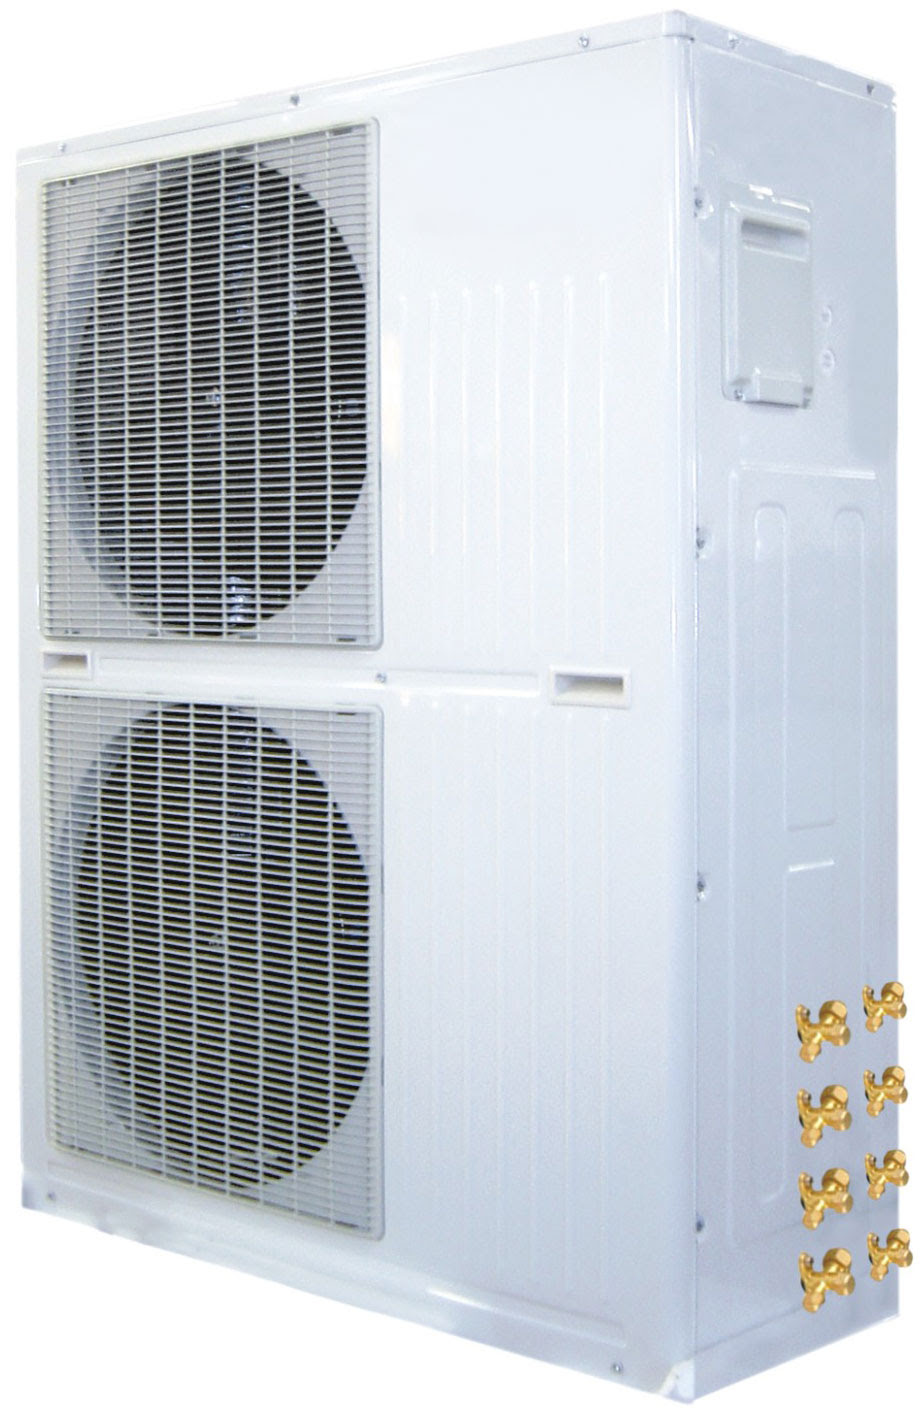 36000 Btu Dual Zone 3 Ton Ductless Split Air Conditioner